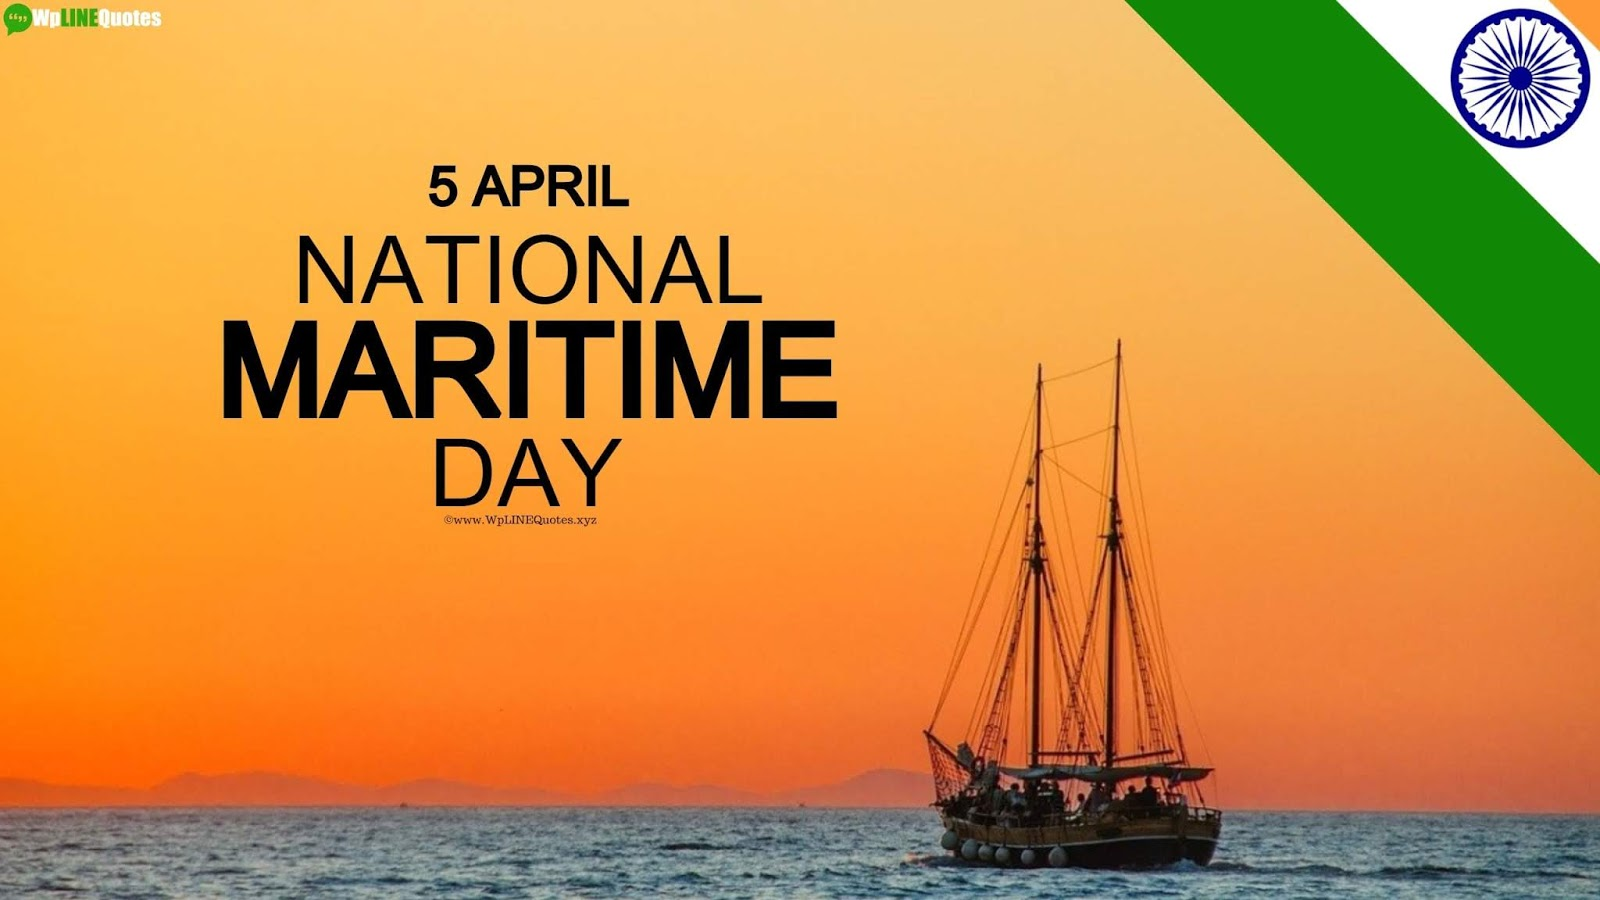 Indian National Maritime Day Quotes, Wishes, Messages, Slogans, History, Images